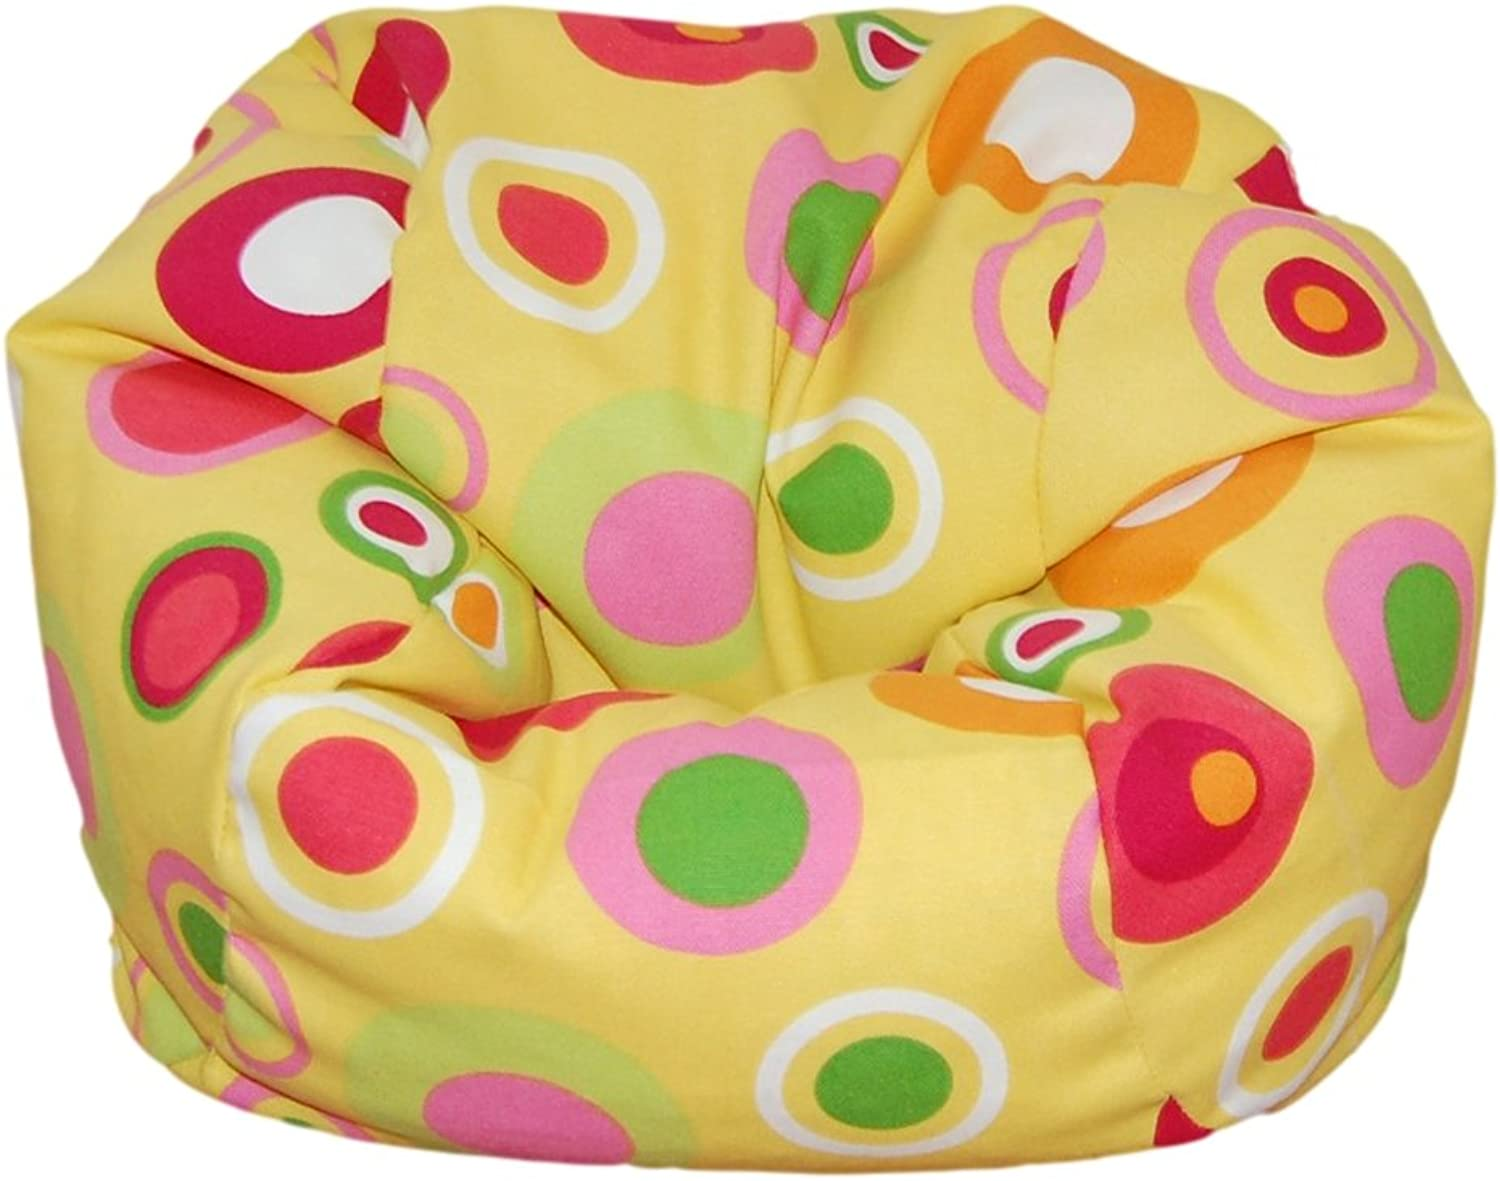 se descuenta Ahh  Products Bubbly Citrus Citrus Citrus Bean Bag Chair for Dolls  tiendas minoristas